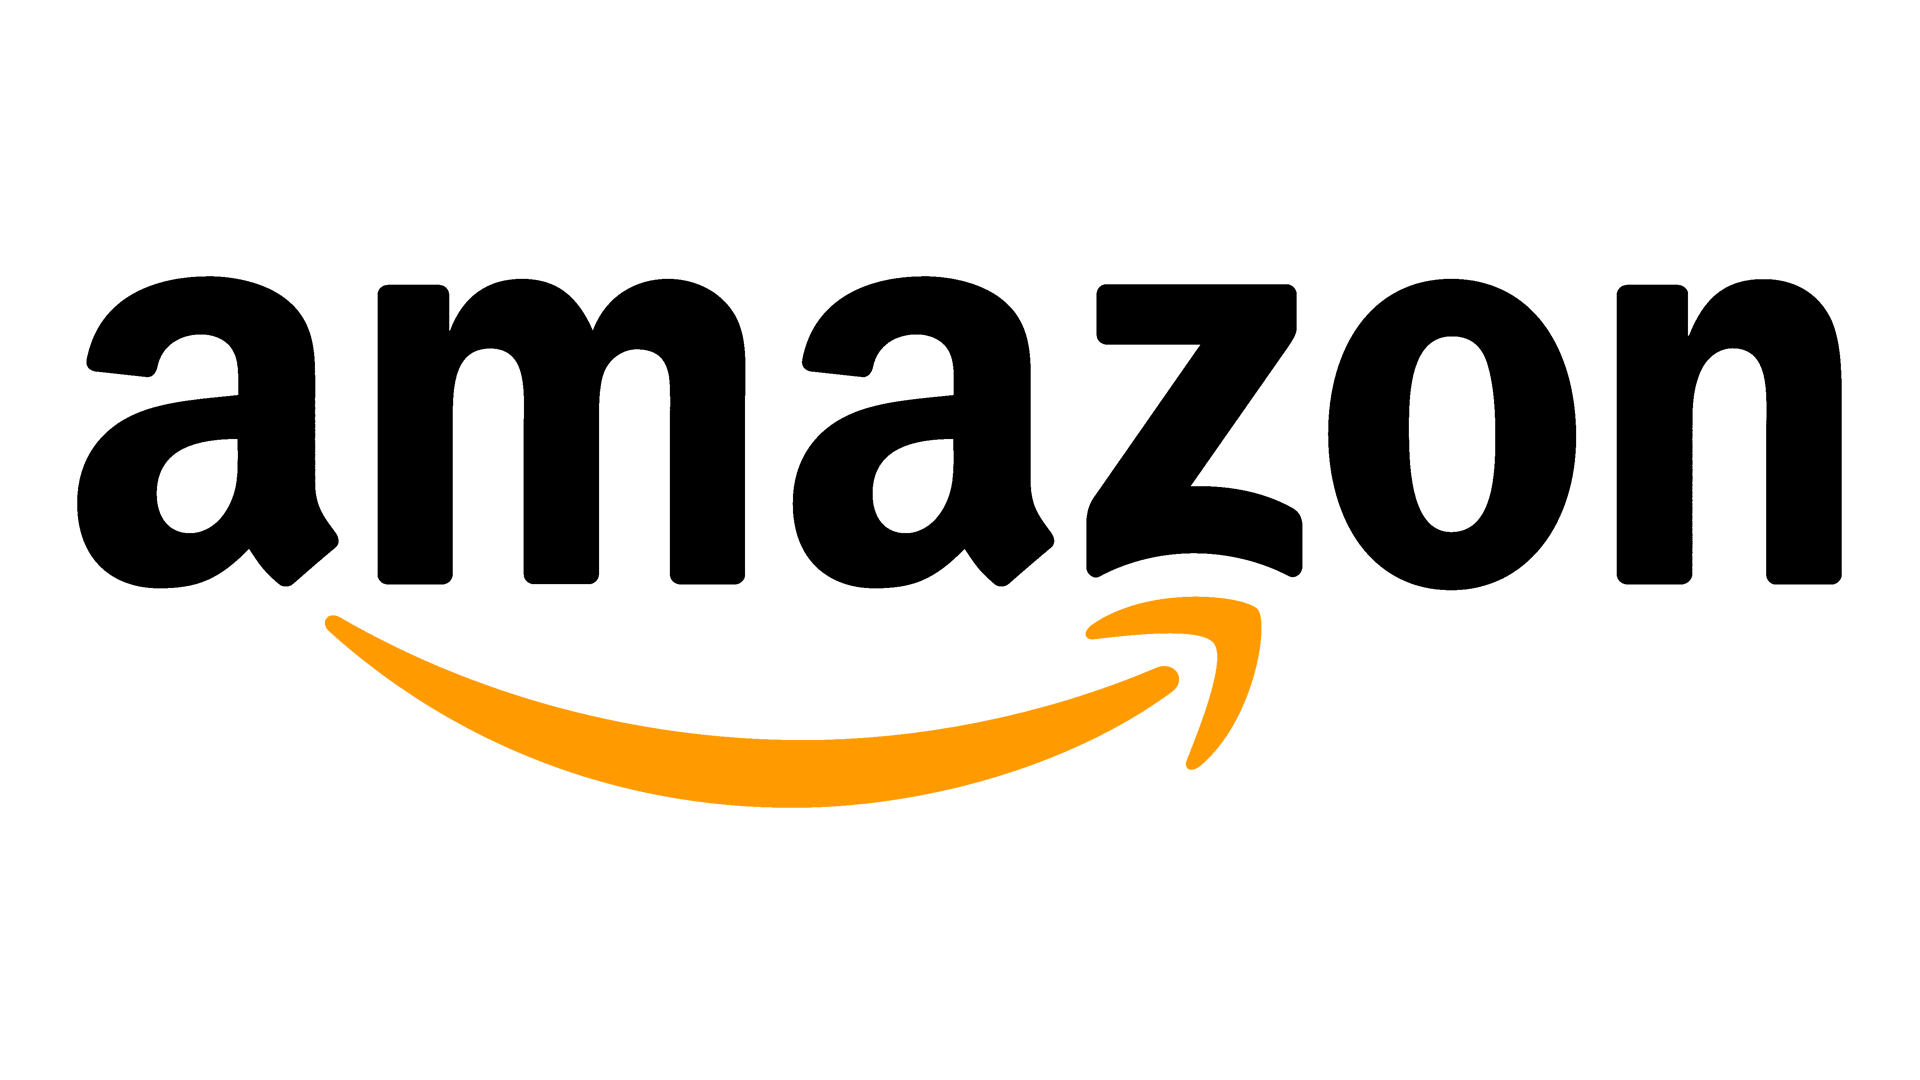 Bureau Professionnel Amazon Comment Renvoyer Un Colis Amazon Fr Retours Amazon Fr